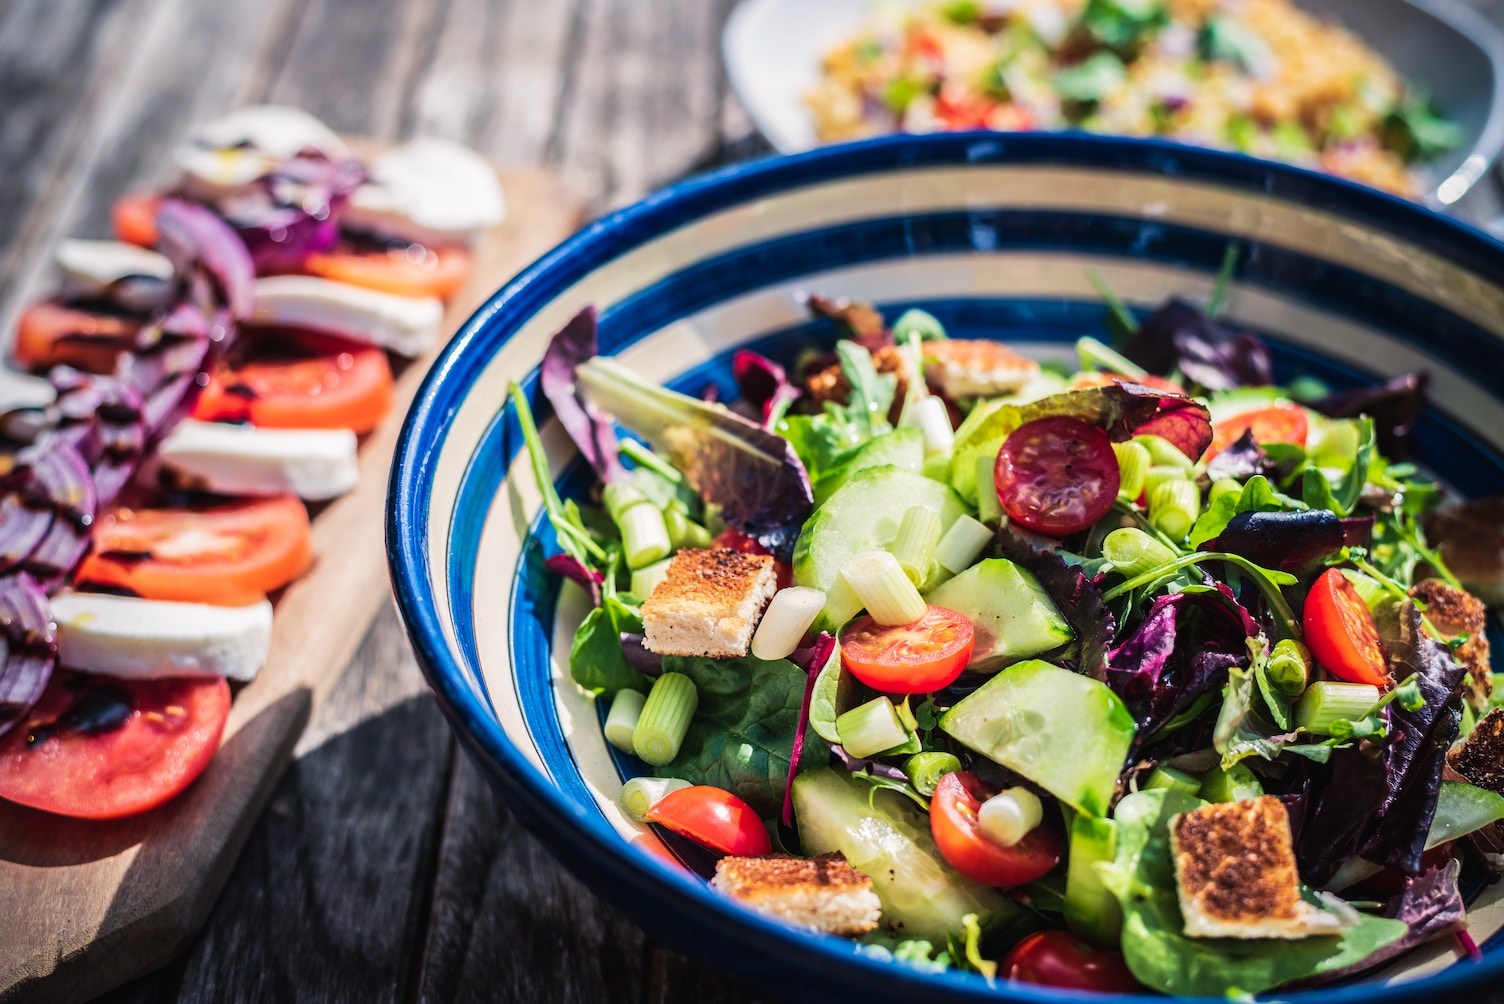 low fat vs low cab diet for weight loss